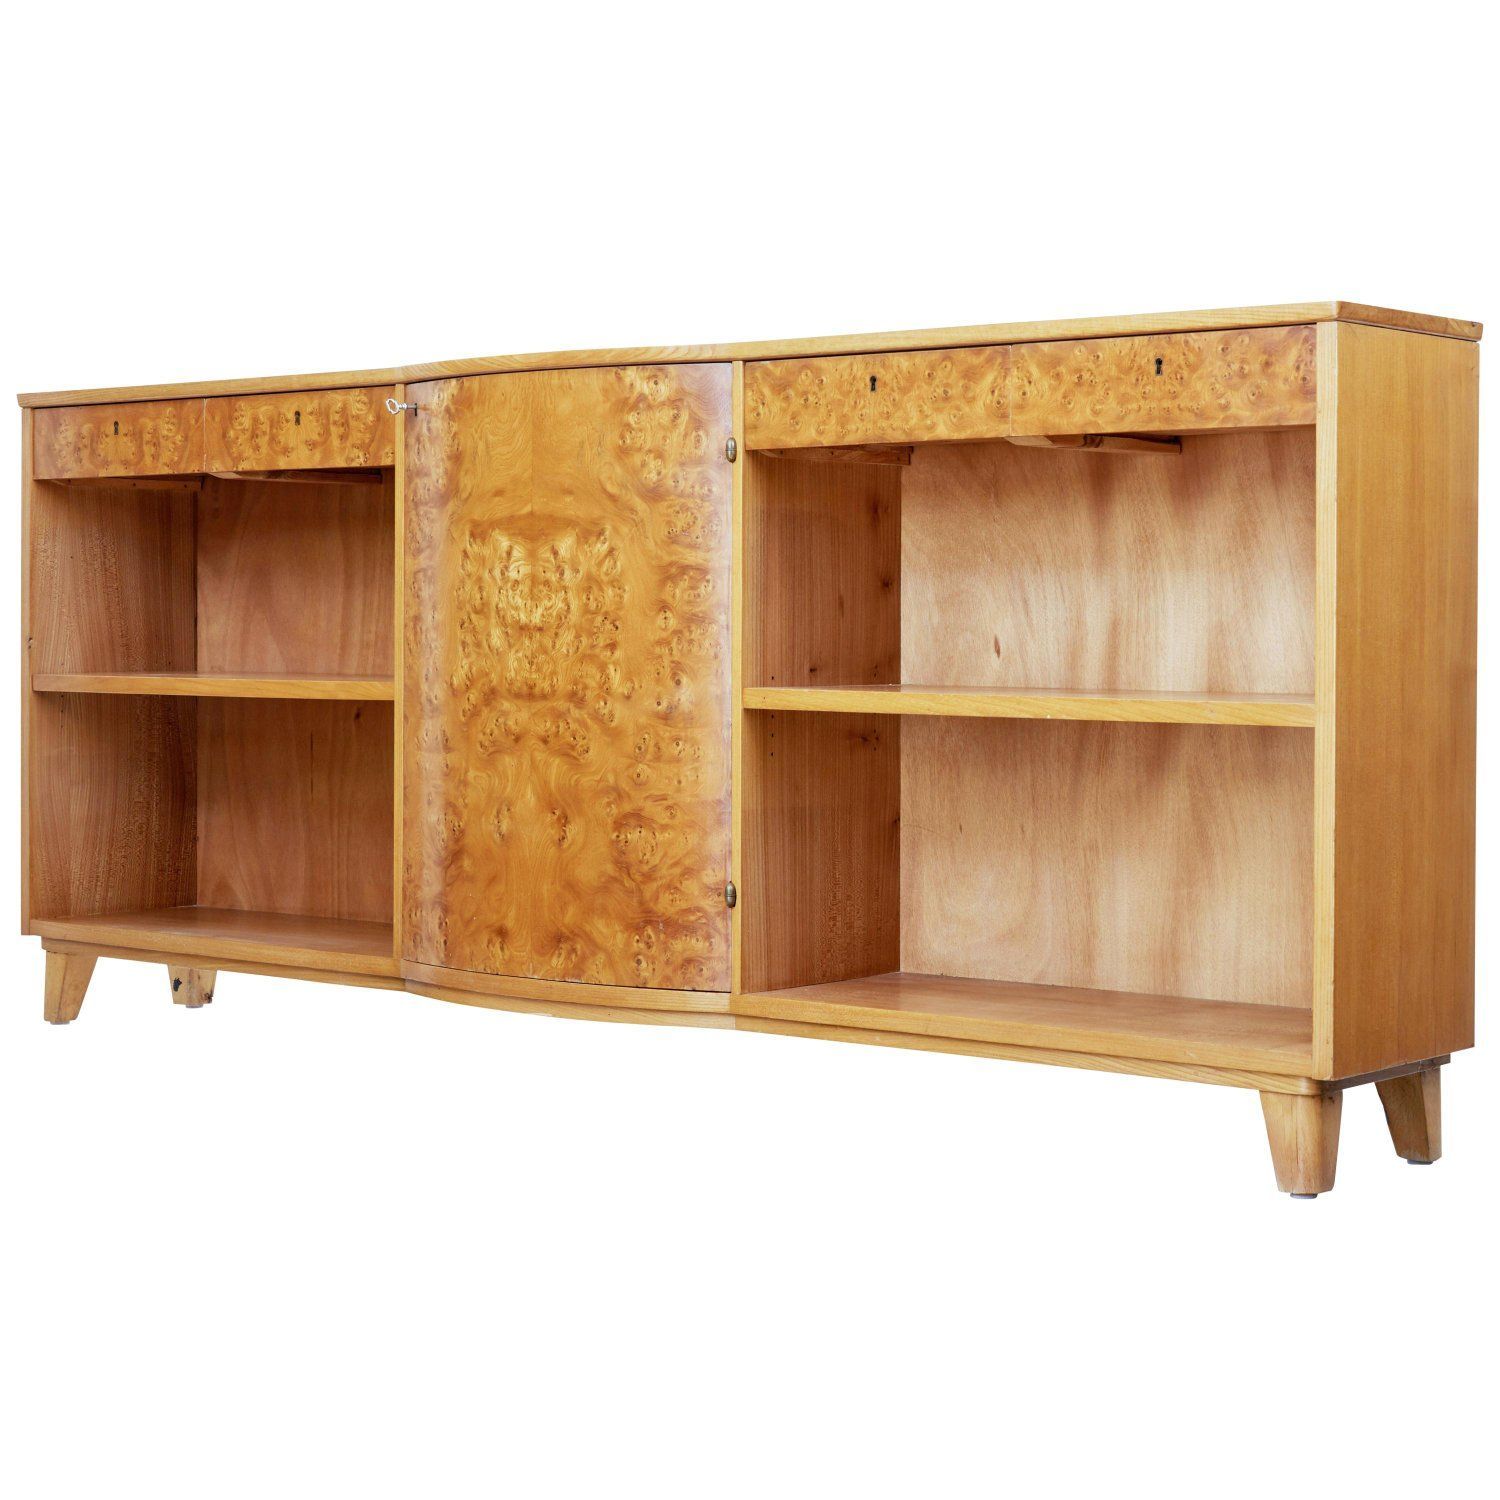 Mid 20th Century Scandinavian Elm Low Bookcase Low Bookcase Bookcase Modern Furniture